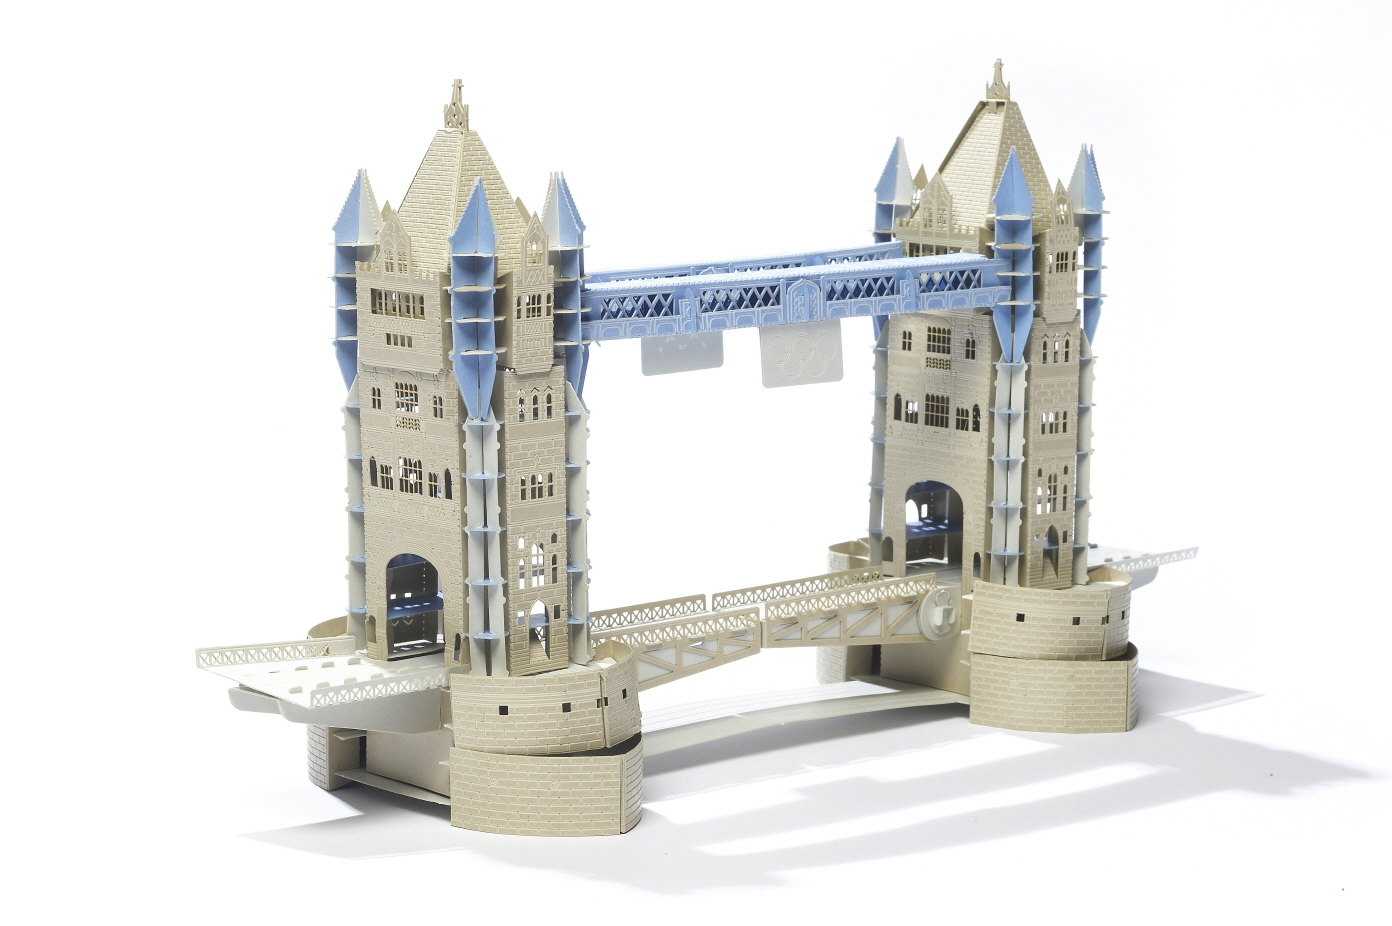 Tower bridge amazing design direct from korean designers for Direct from the designers